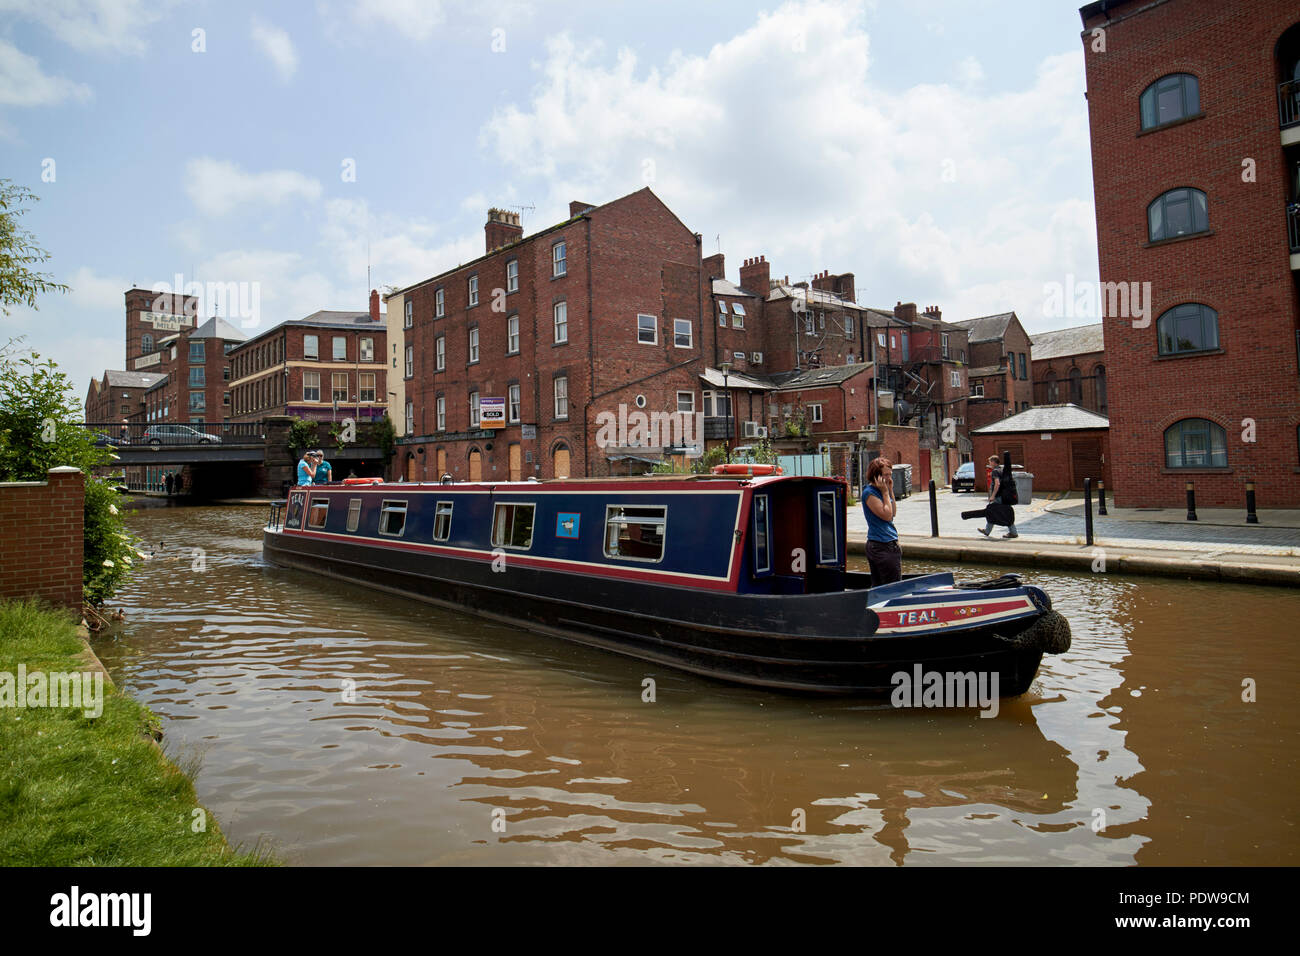 canal narrowboat on the Shropshire union canal main line in chester cheshire england uk - Stock Image